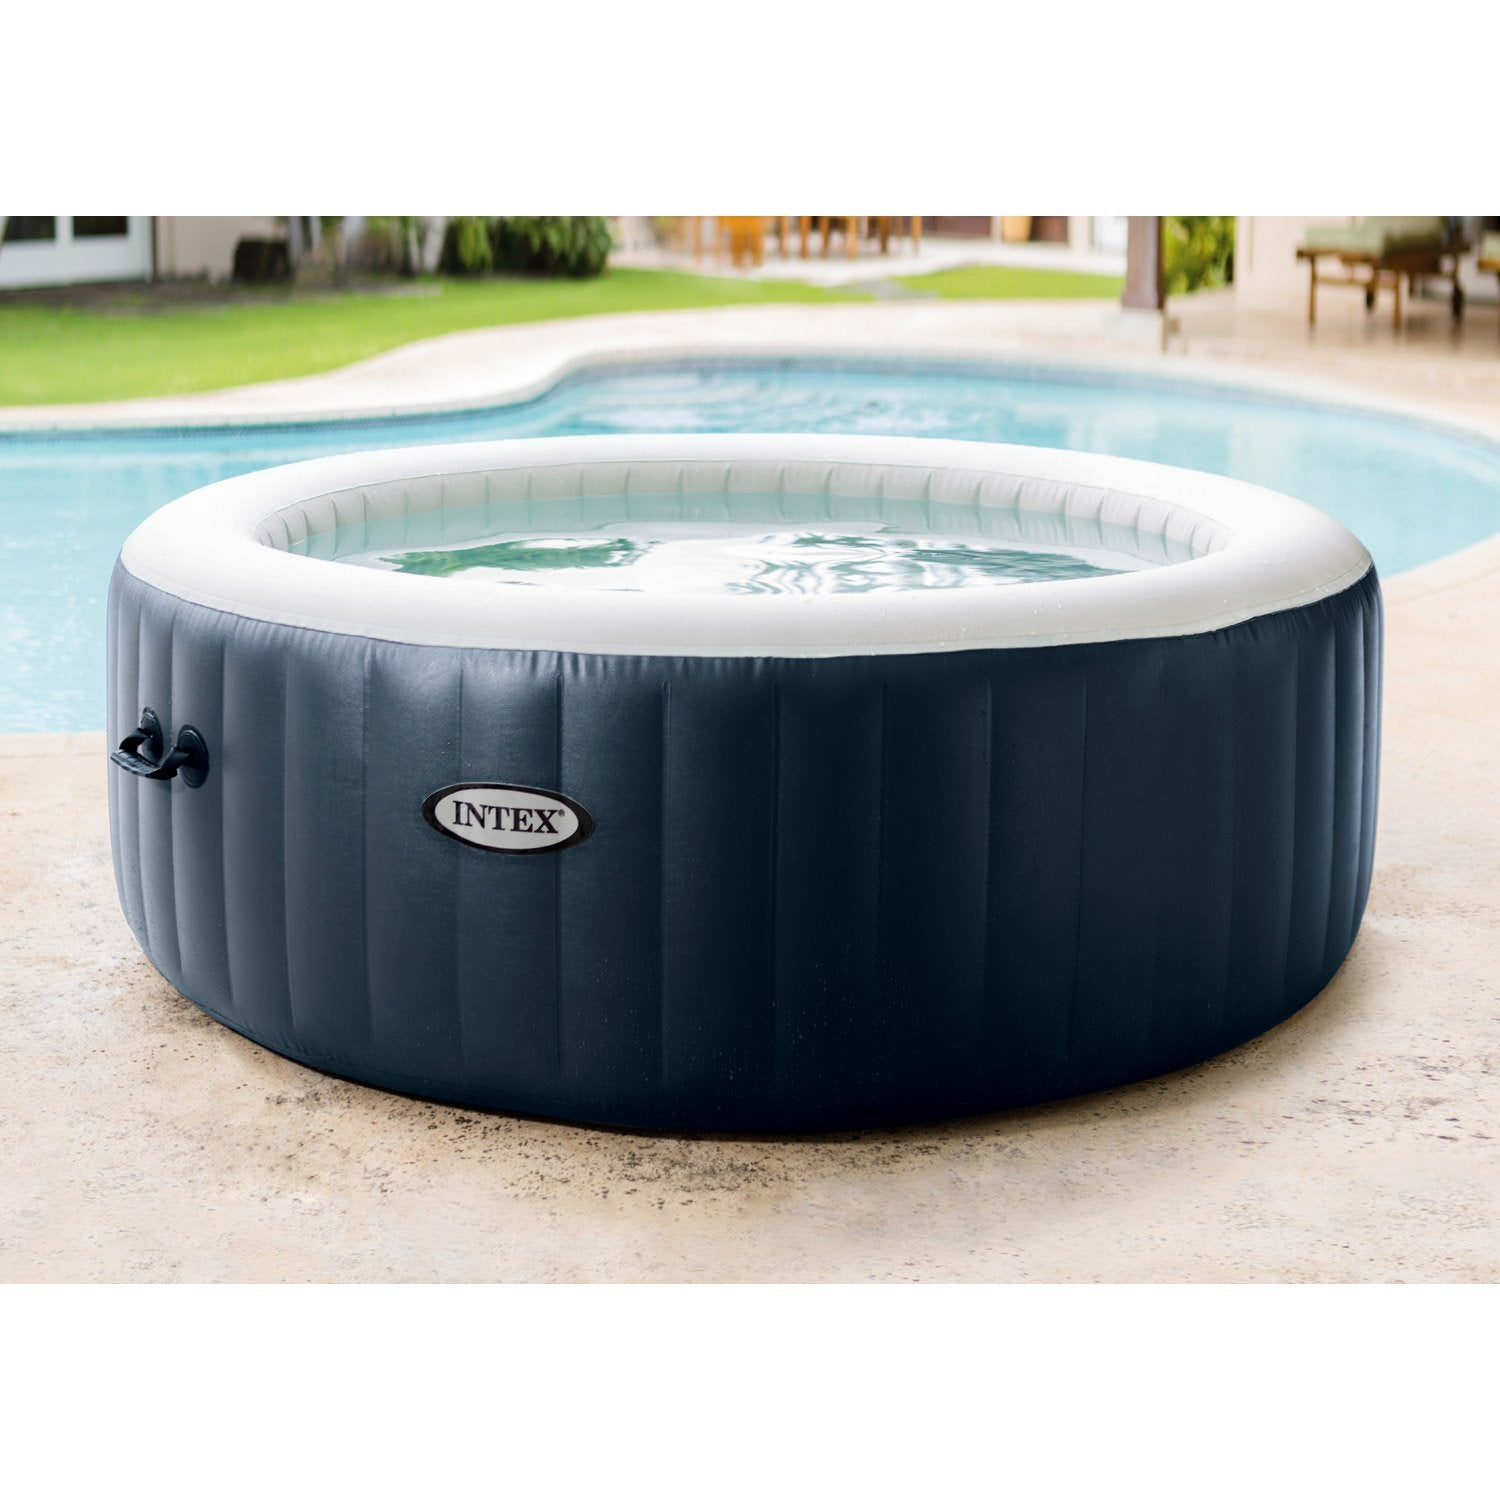 Spa gonflable intex purespa bulles blue navy rond 6 - Spa gonflable intex pas cher ...